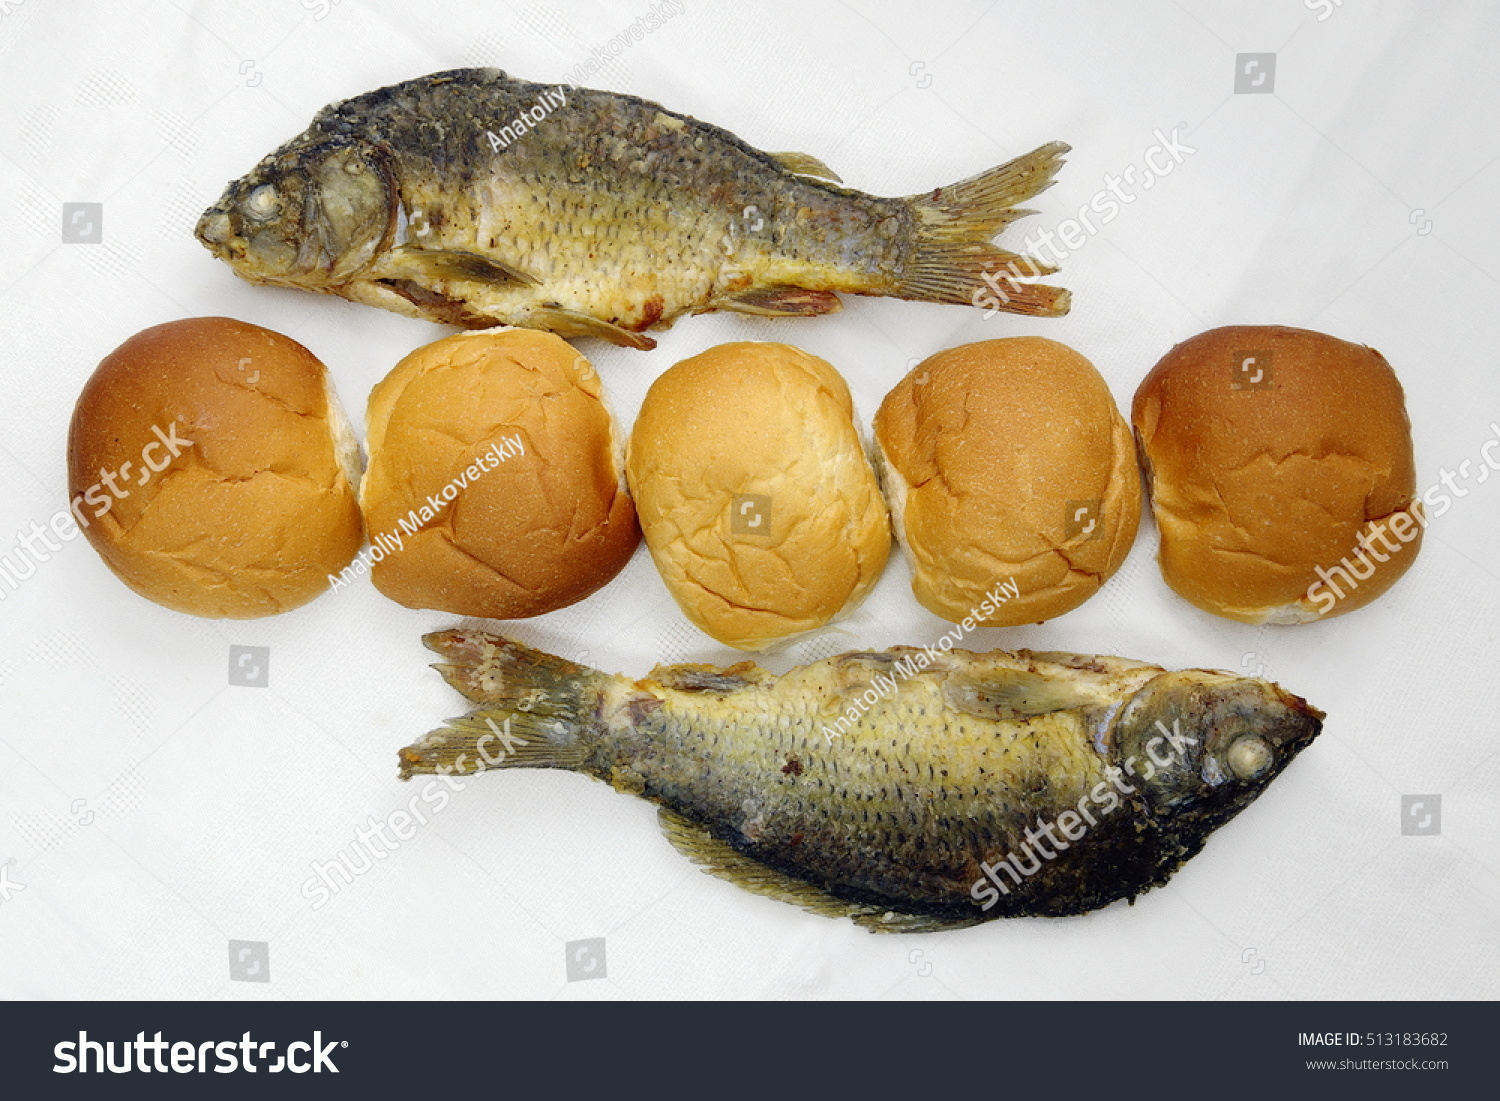 Five loaves two fishes stock photo 513183682 shutterstock for Five loaves two fish